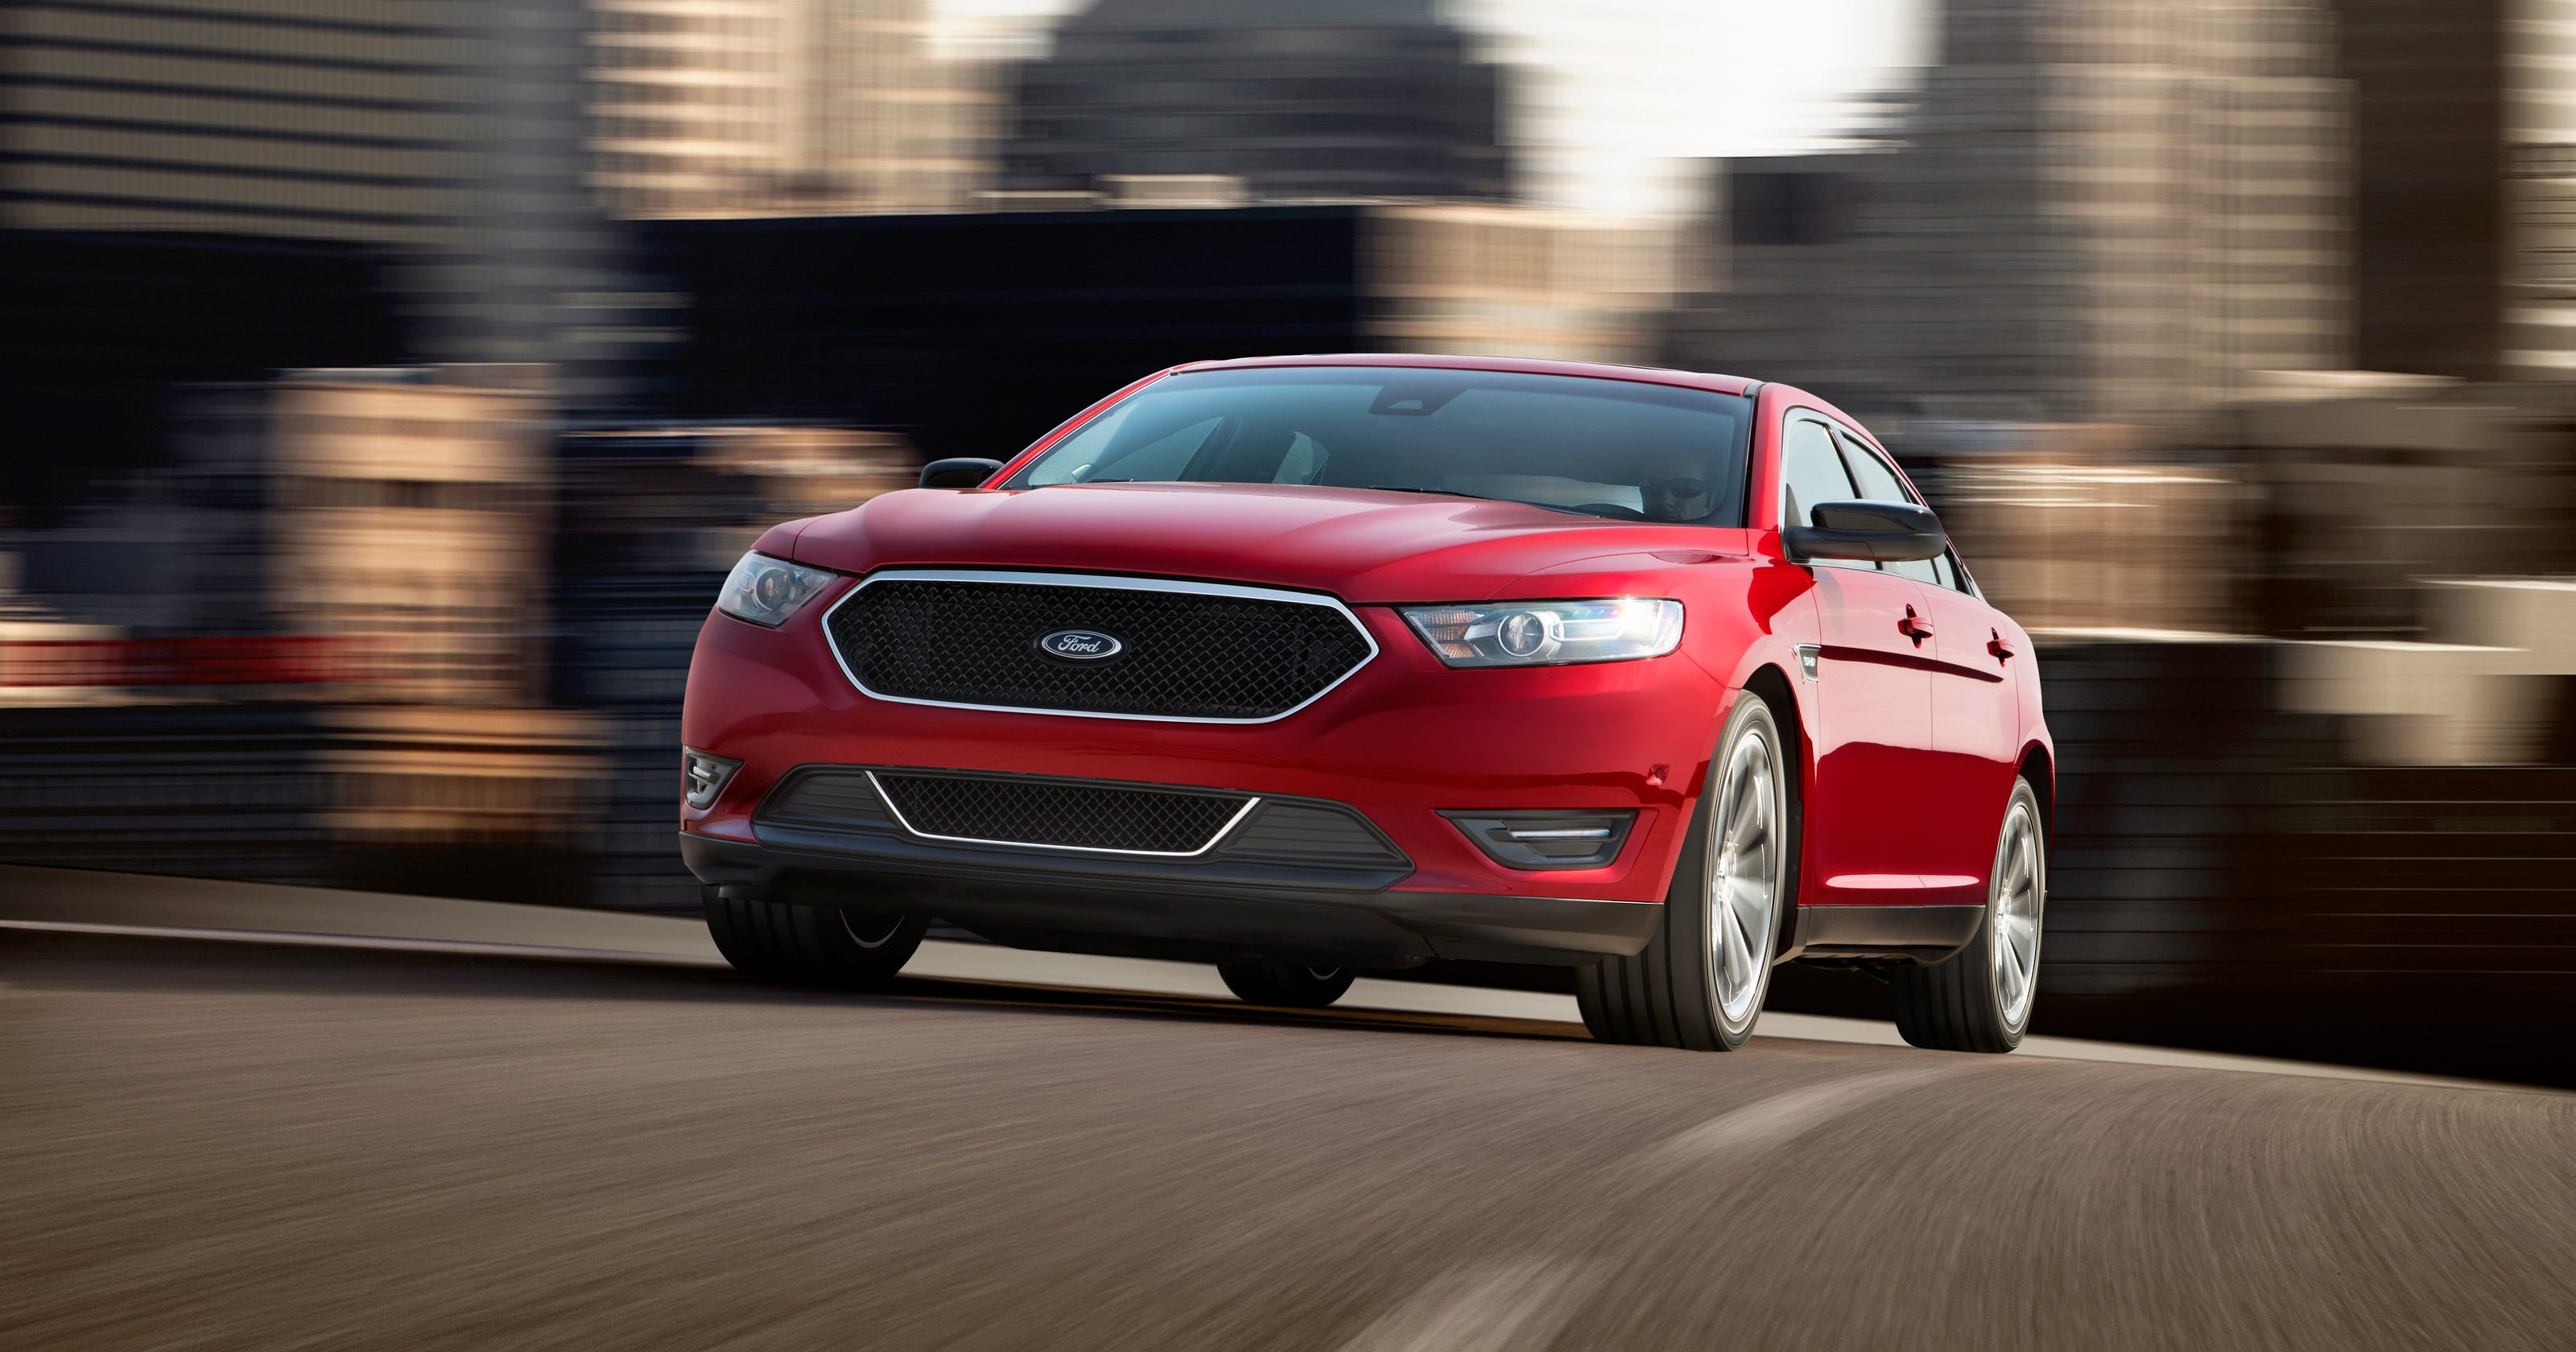 Ford Taurus, Fiesta, Fusion dropped: What we'll remember most